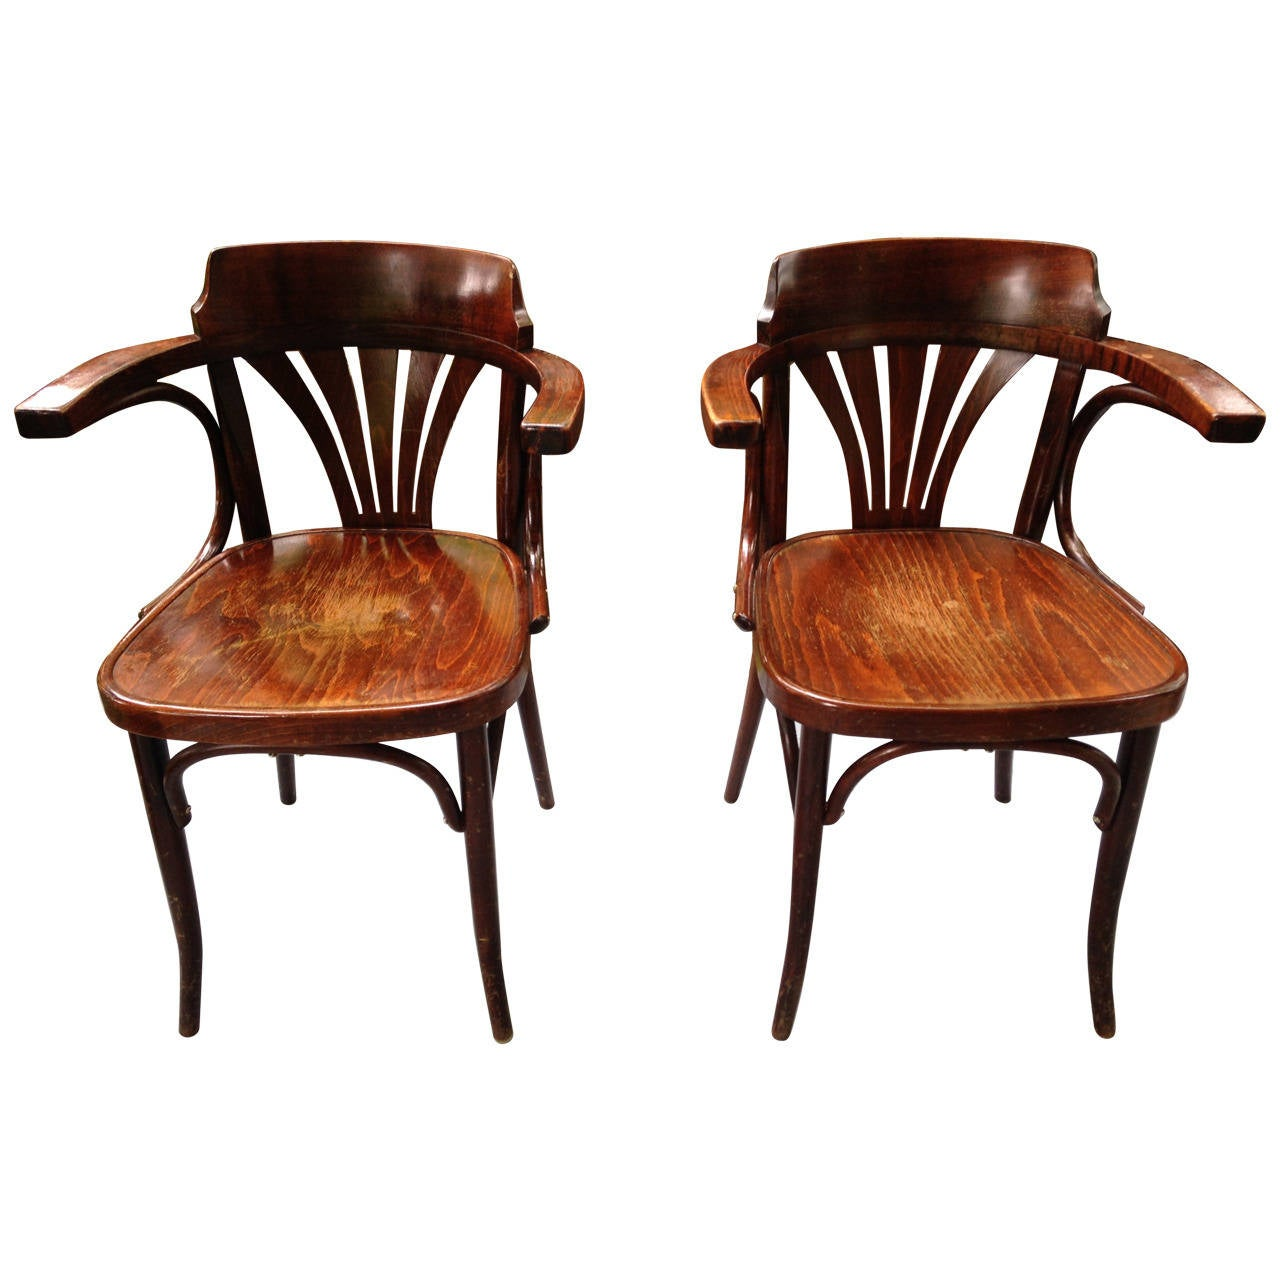 thonet chair styles farmhouse chairs pair of vienna style bentwood dining 12